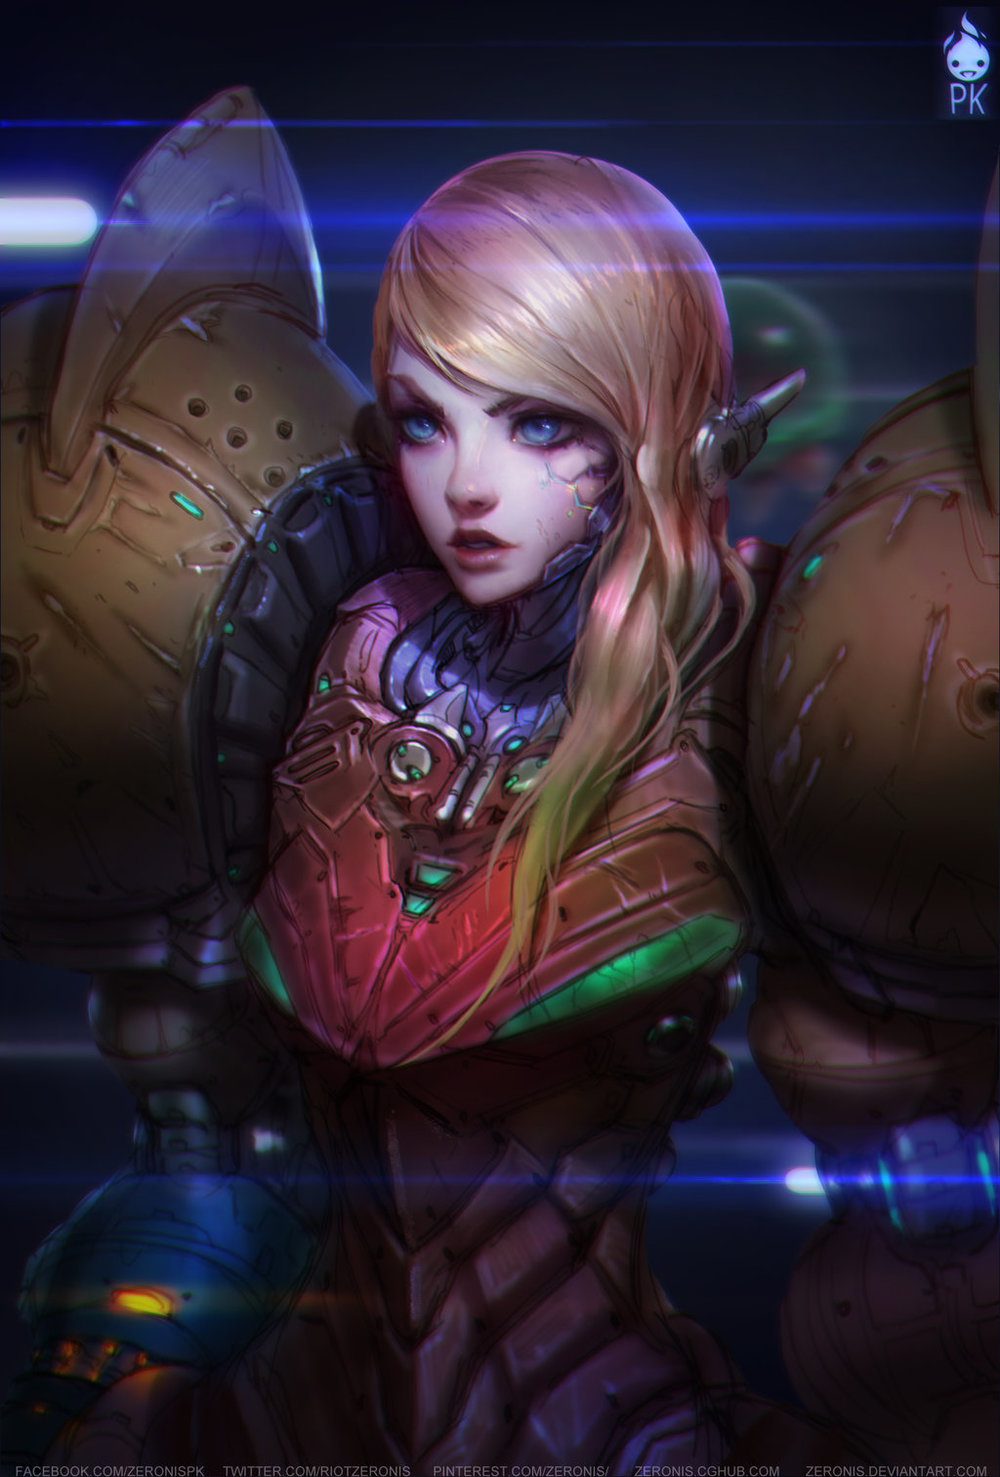 samus_portrait_kkg_artbook_by_zeronis-d78ncsc.jpg